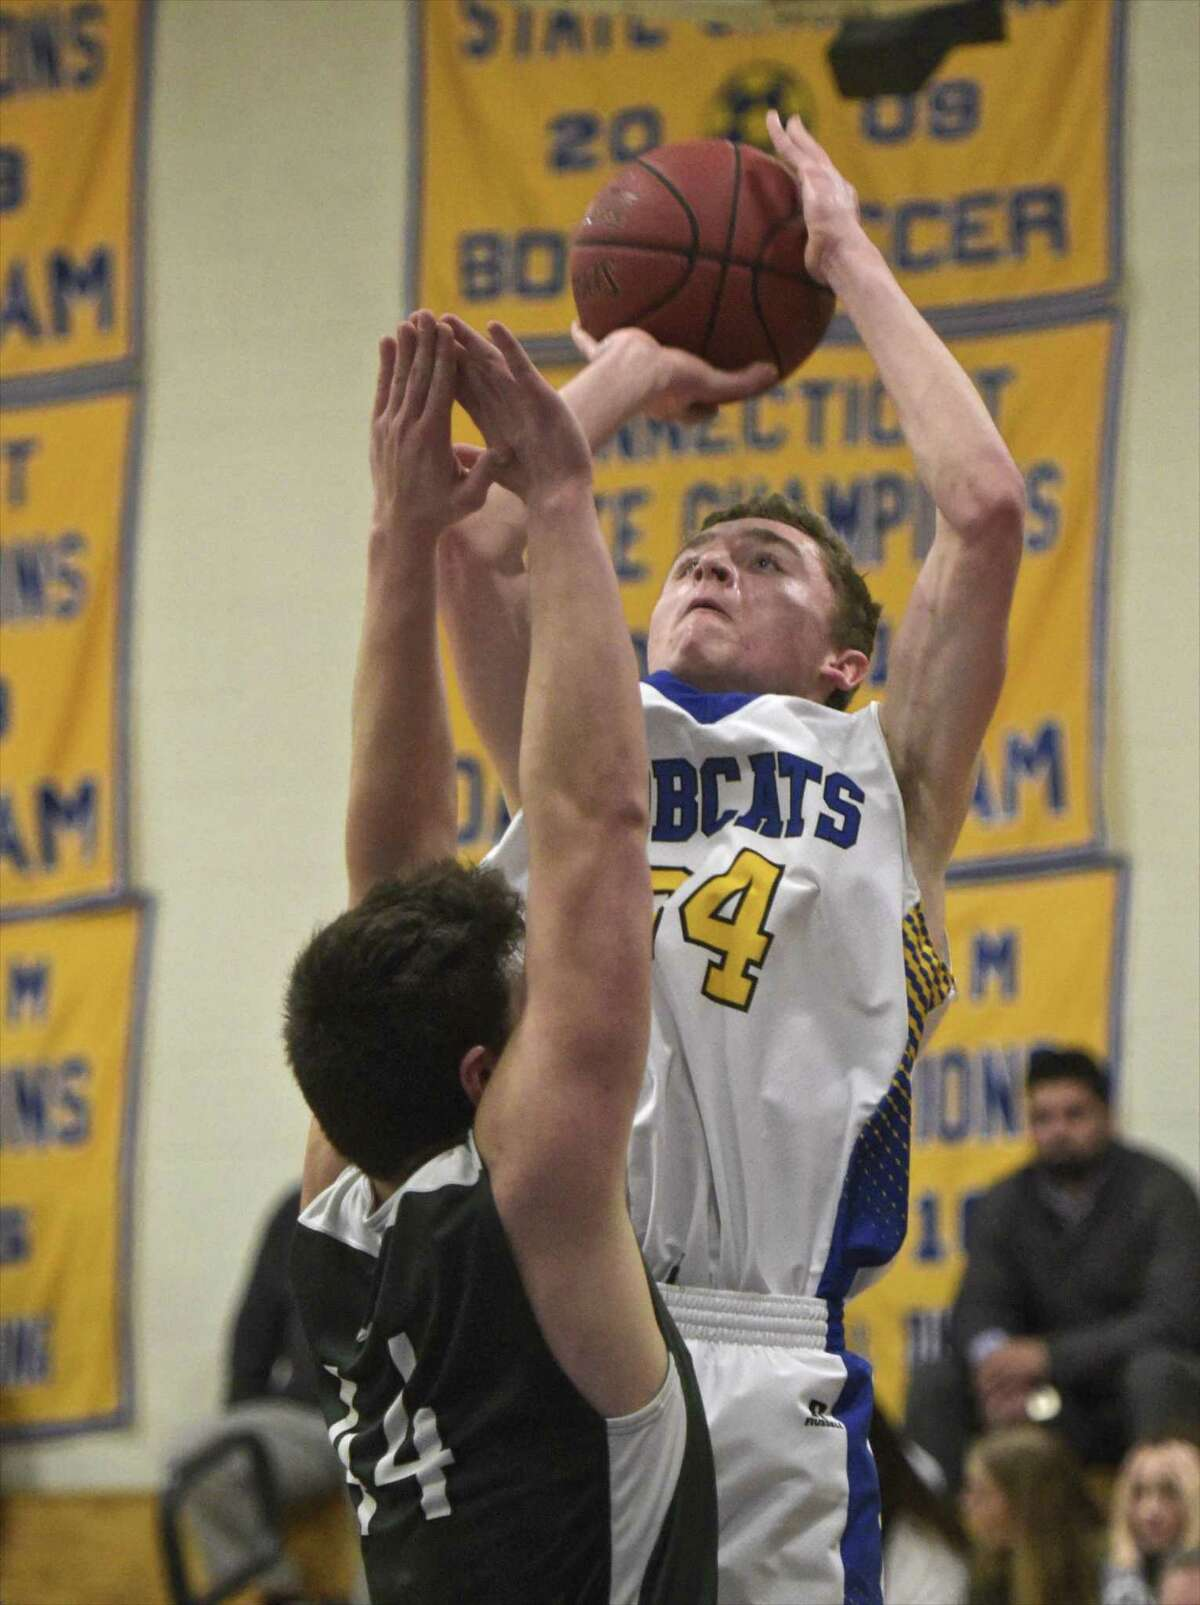 Brookfield's Christopher Pesantez (44) shoots over New Milford's Christopher Pesantez (44) in the boys basketball game between New Milford and Brookfield high school, Thursday night, February 15, 2018, at Brookfield High School, Brookfield, Conn.